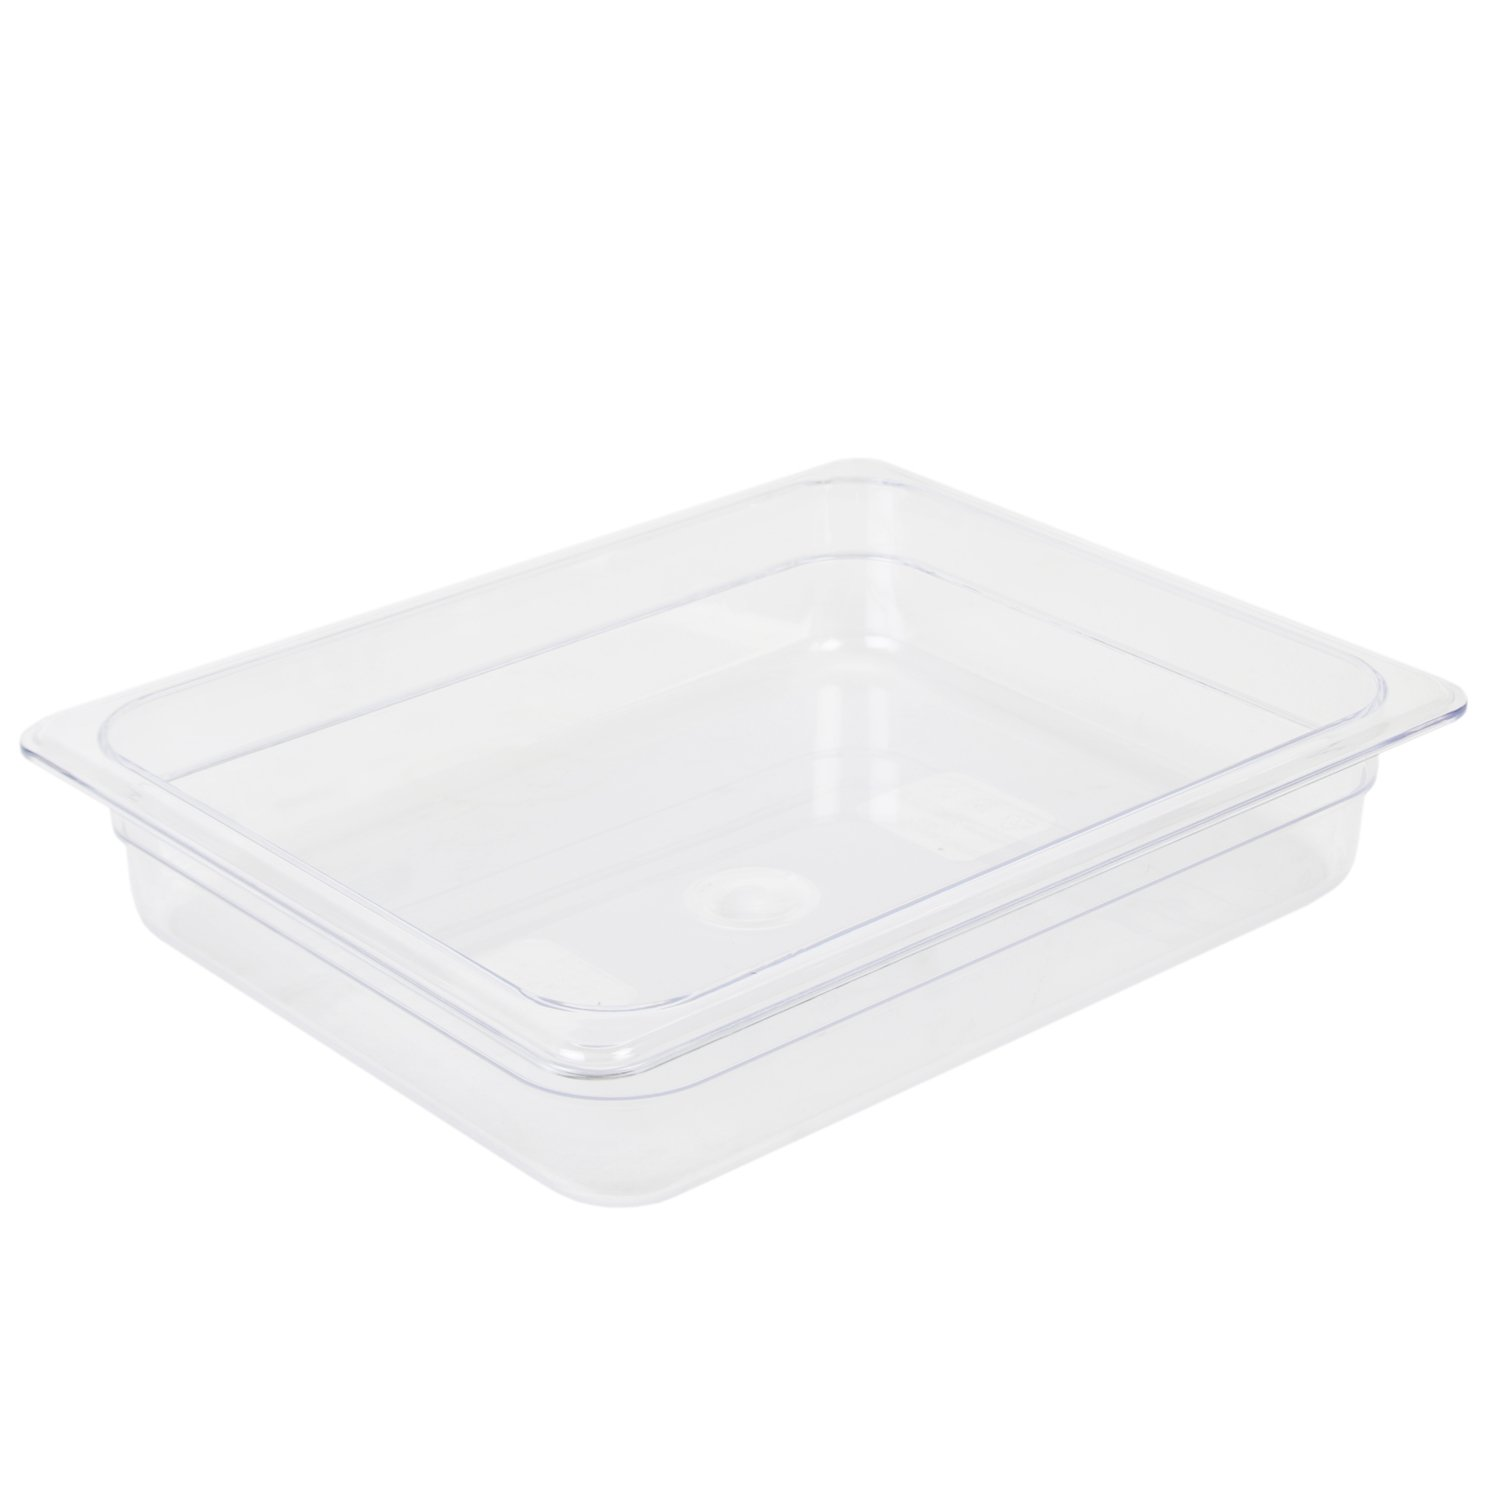 Excellante 849851007000 Deep Polycarbonate Food Pan, 2.5